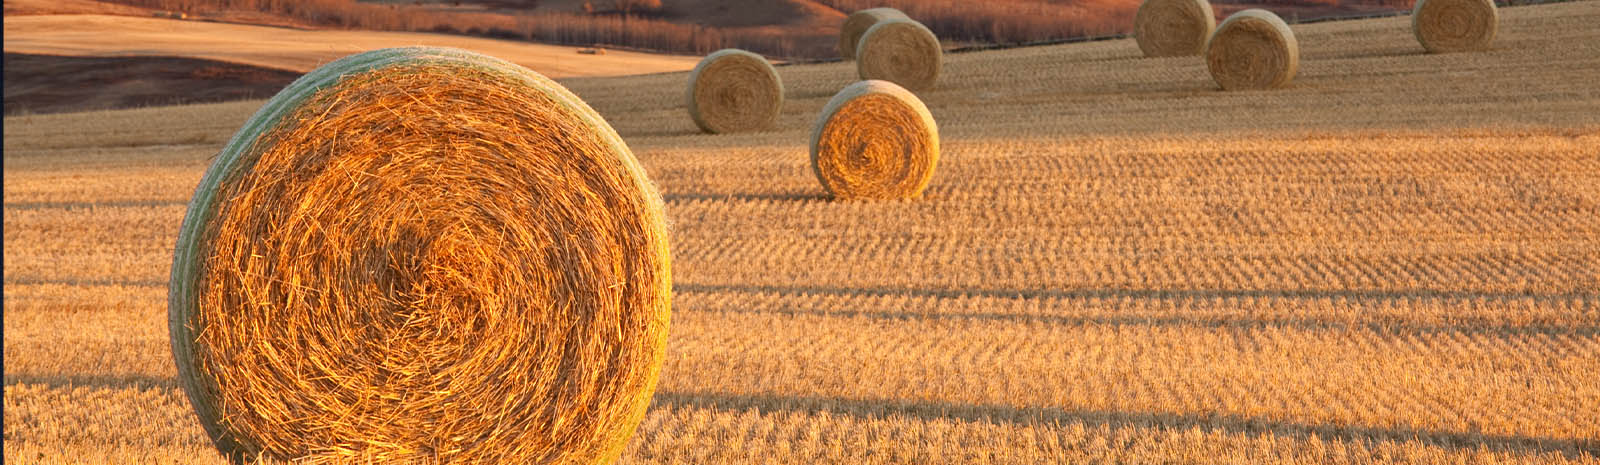 Pasture of Hay Bales